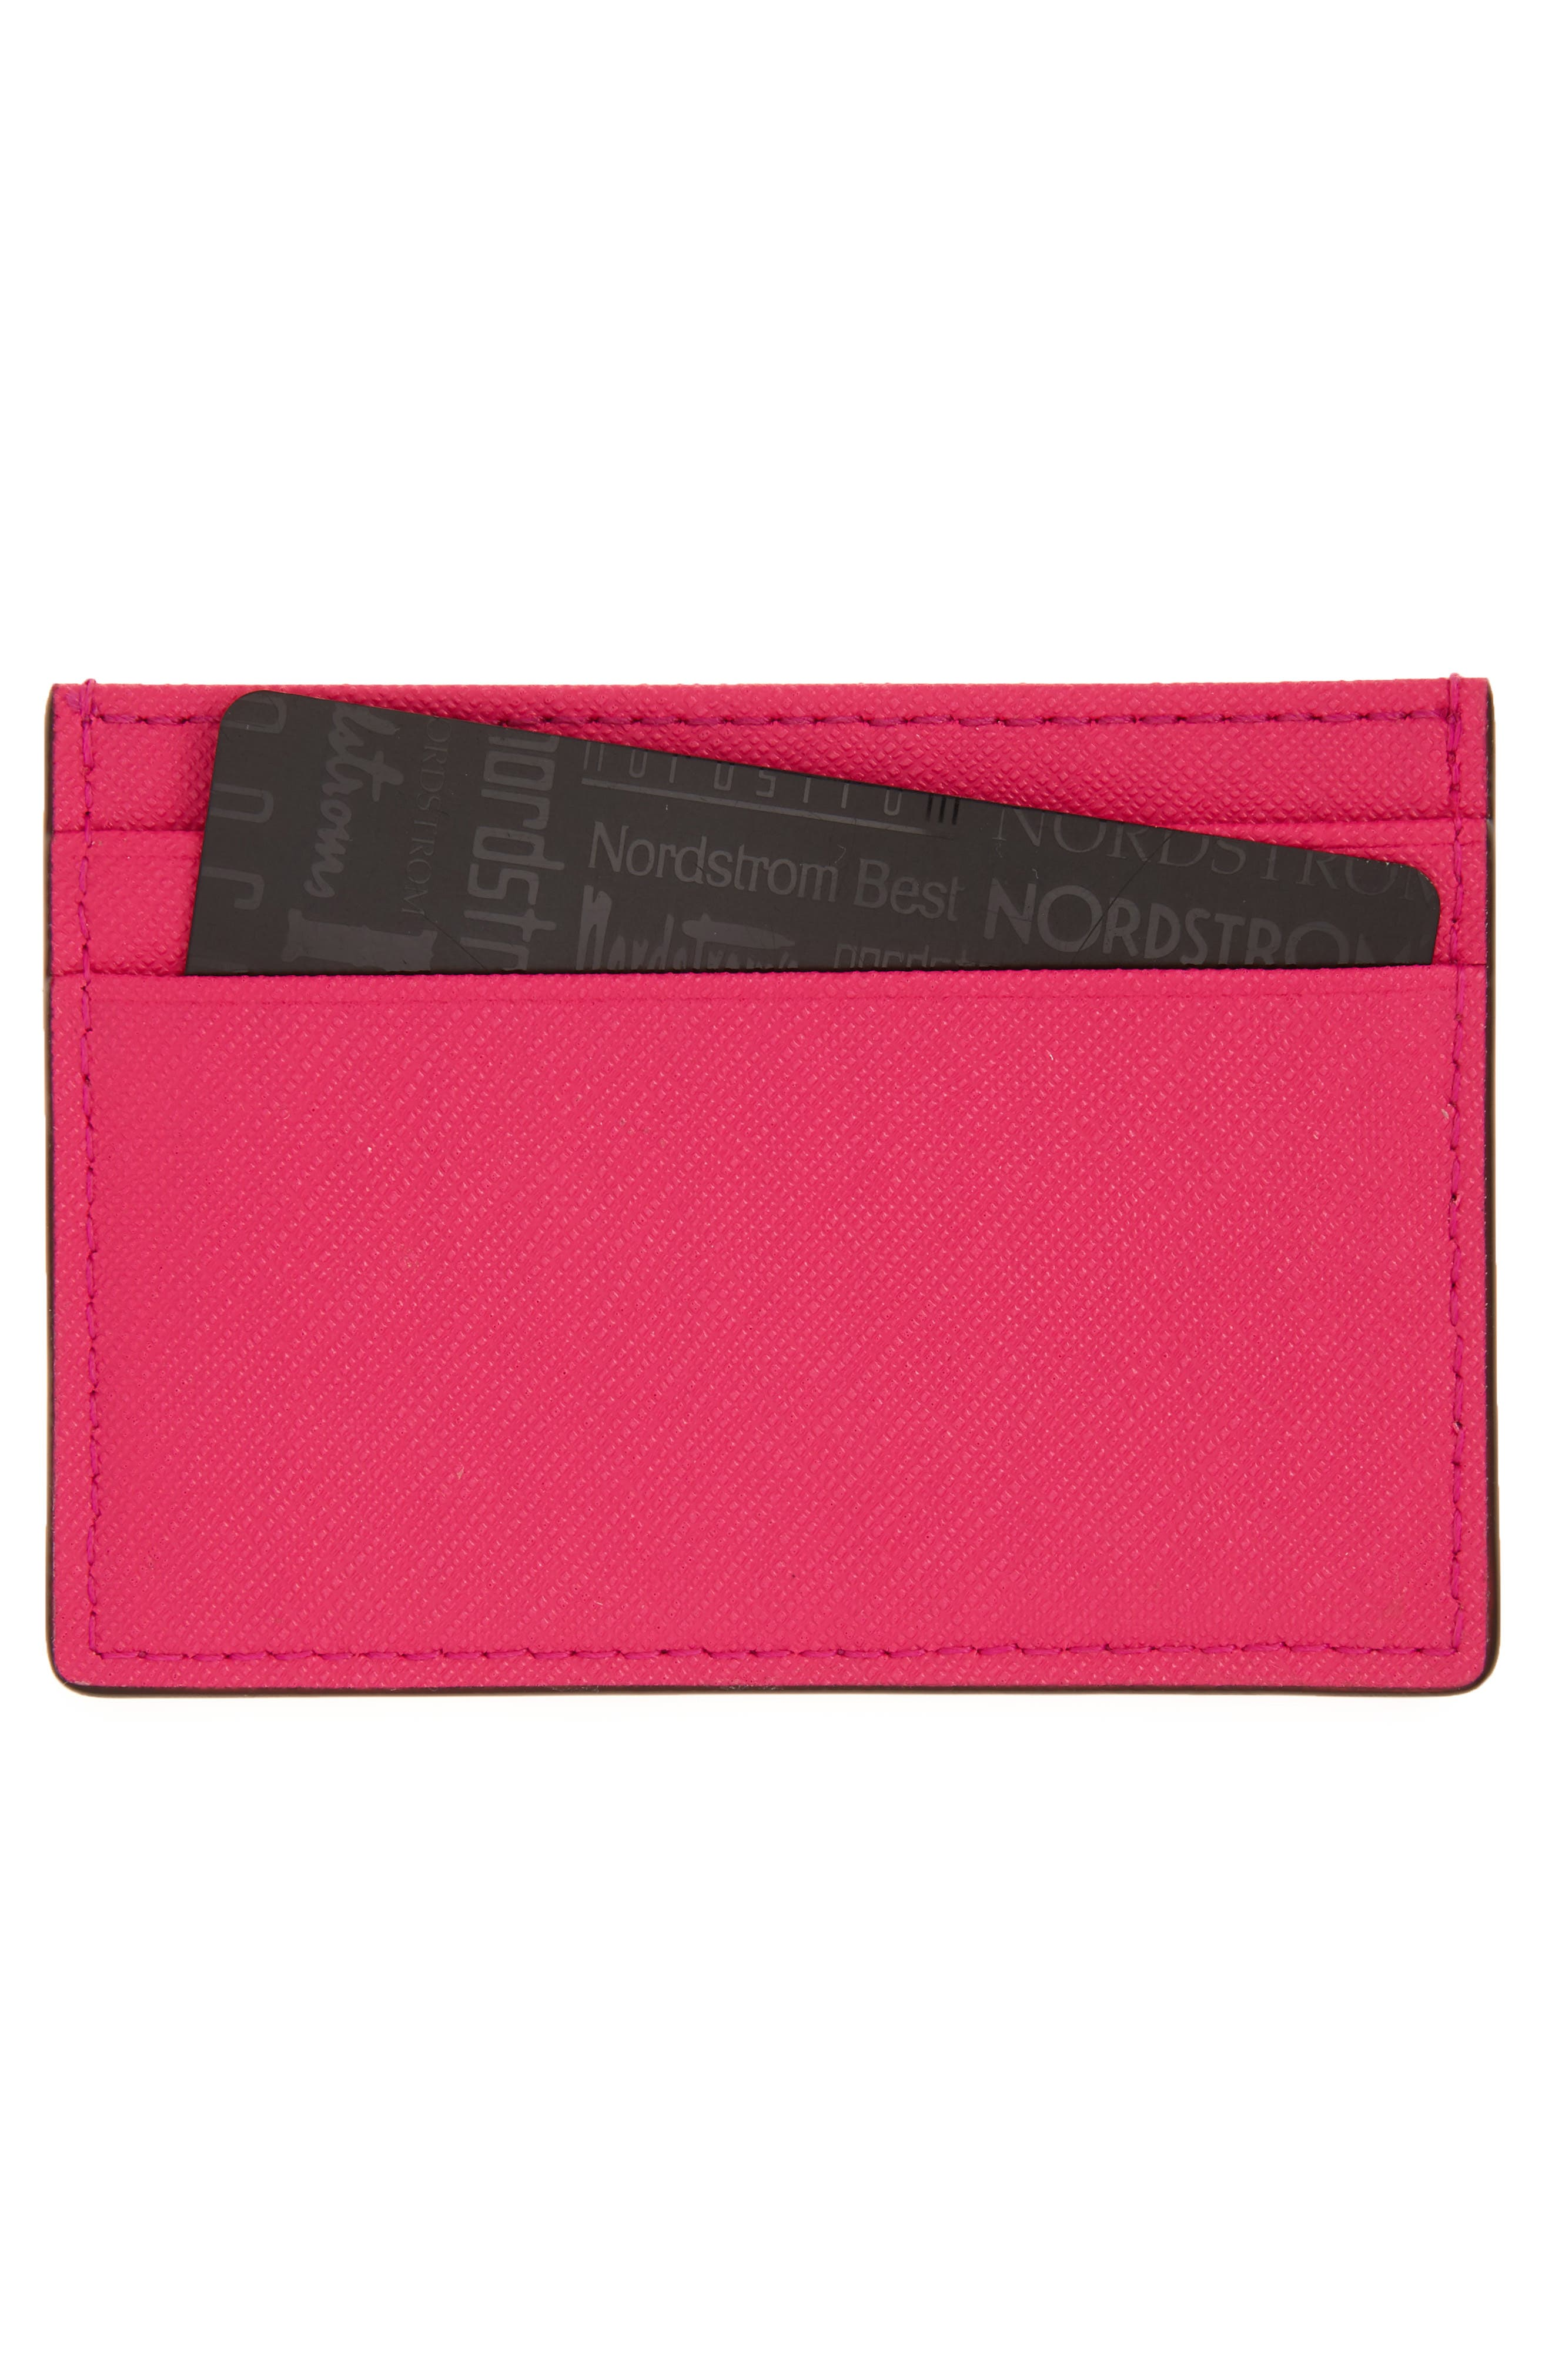 cameron street card holder,                             Alternate thumbnail 24, color,